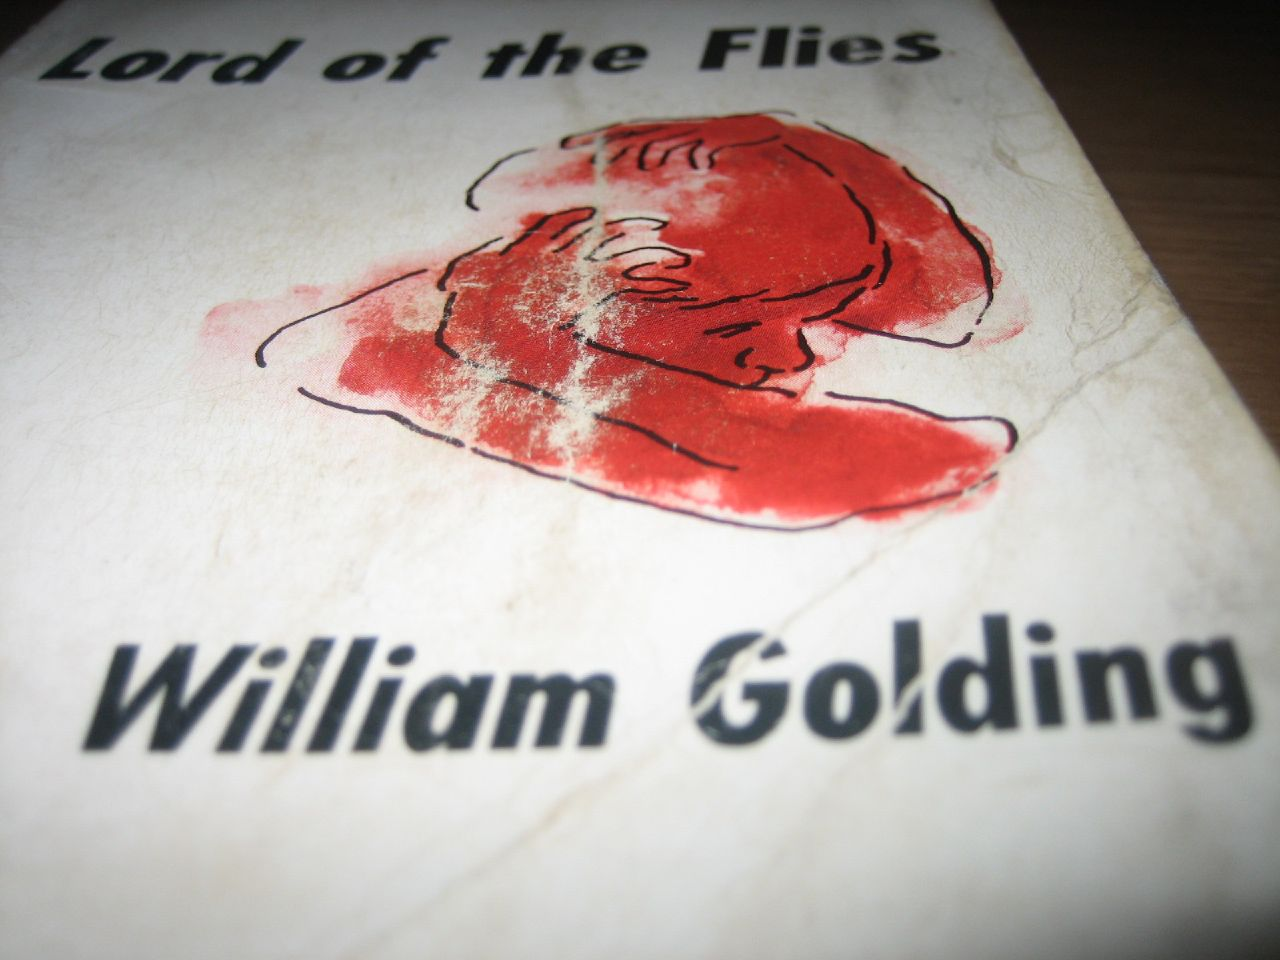 The cover of a vintage edition of Lord of the Flies